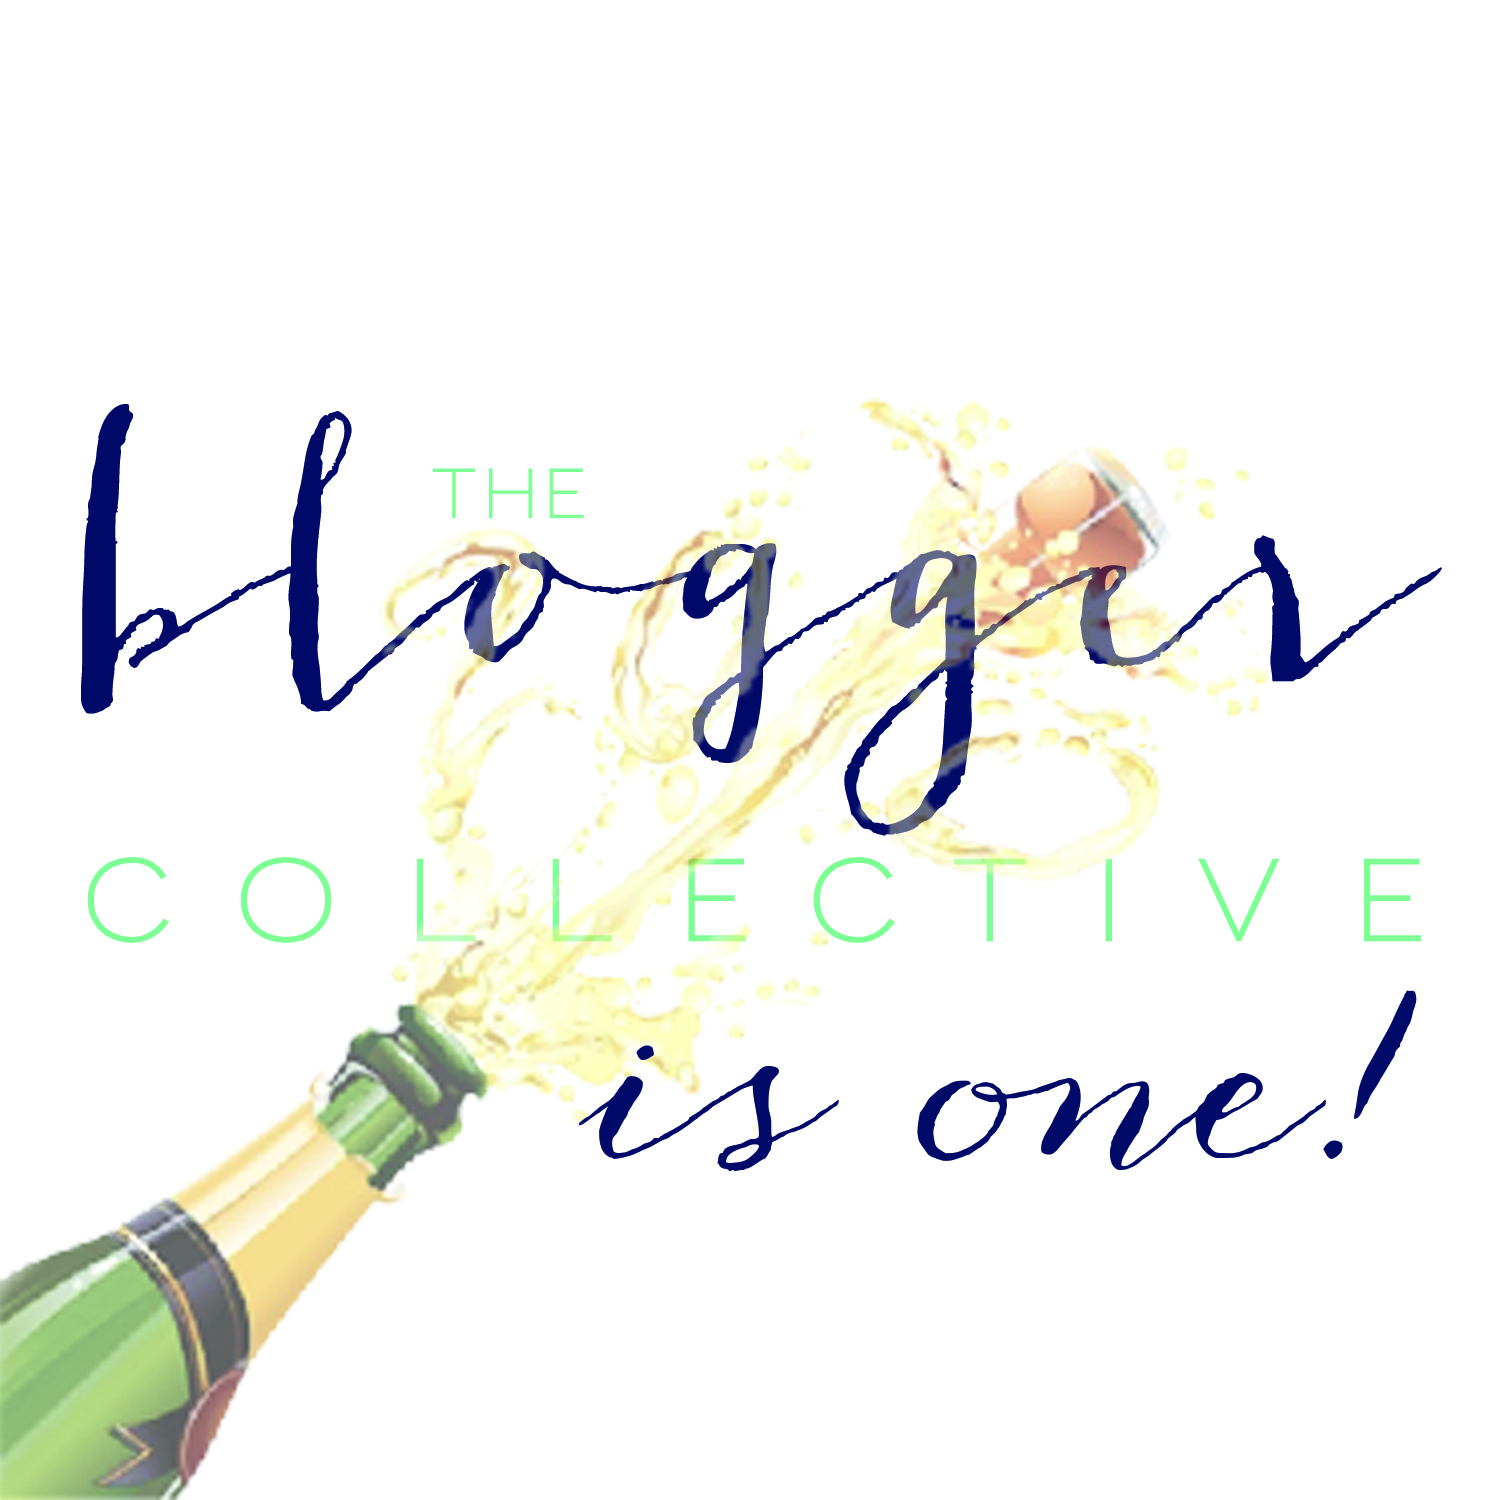 The Blogger Collective turns ONE! // www.thehiveblog.com